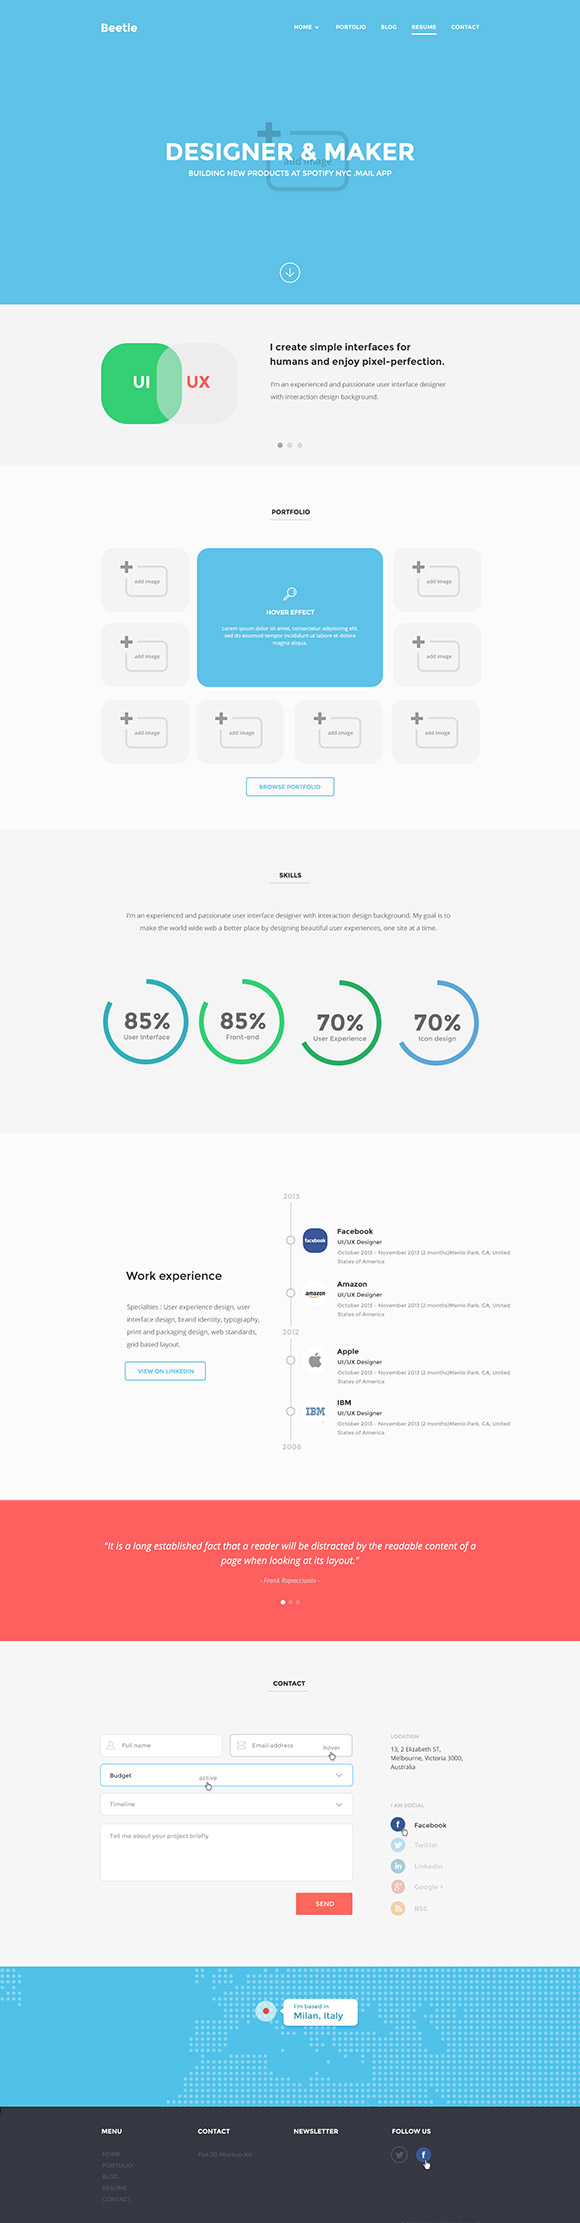 Beetle is a responsive HTML5 template for landing pages, blog and resume. Designed by Frank Rapacciuolo.